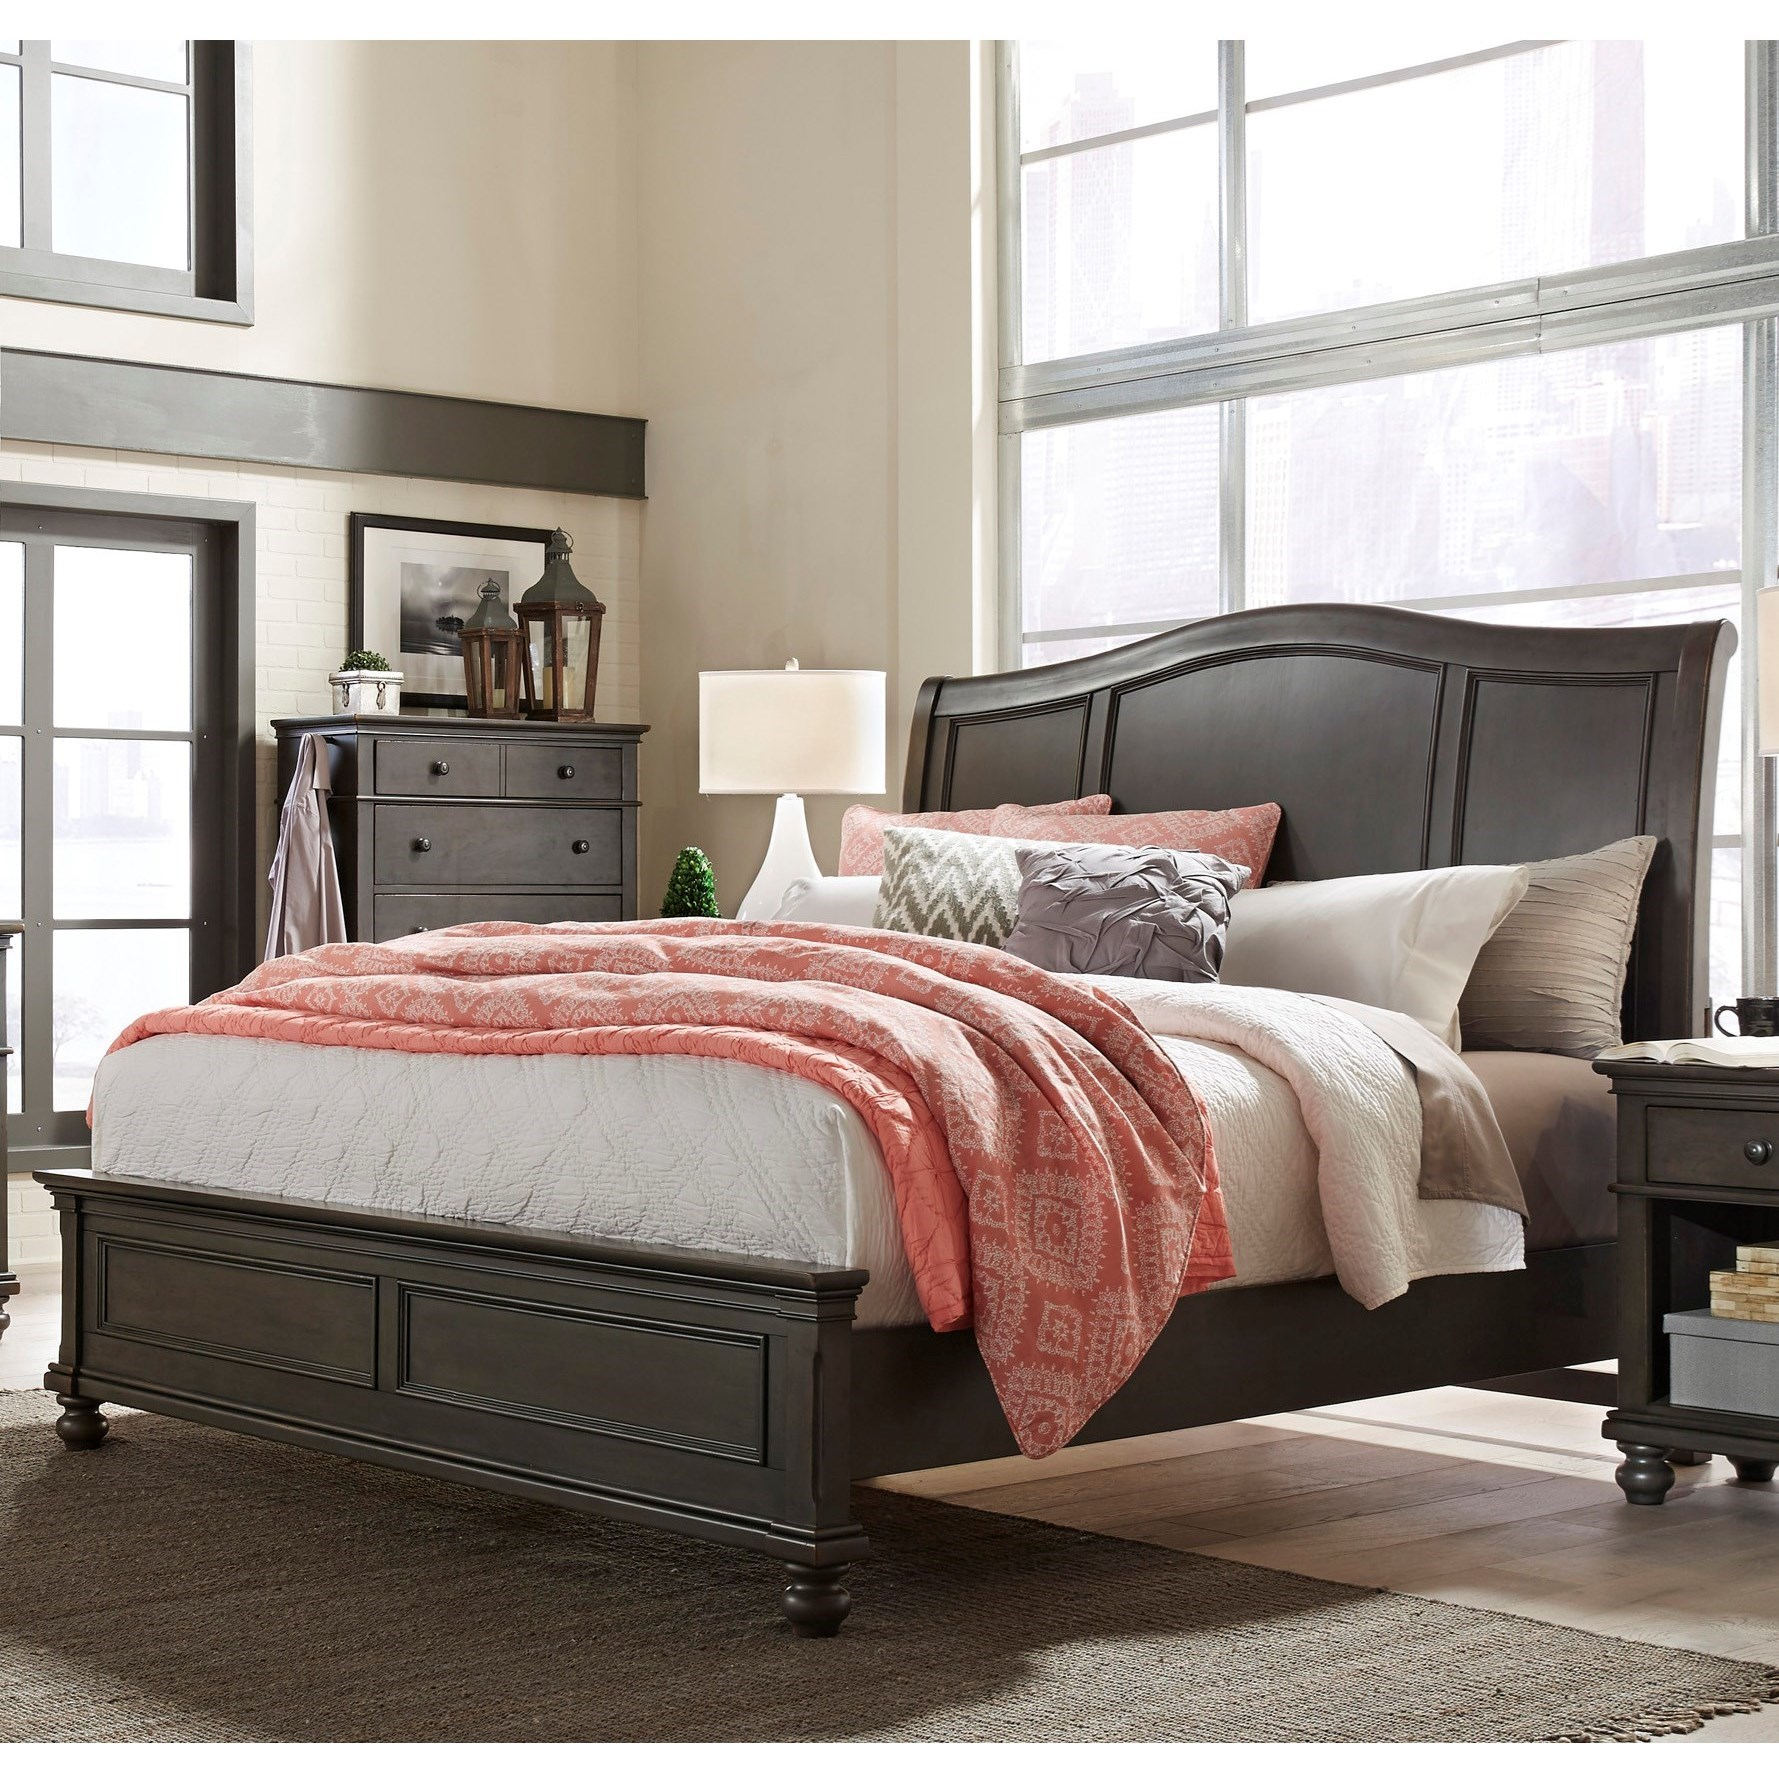 Aspenhome Oxford Queen Bed - Item Number: I07-400+403+402-PEP